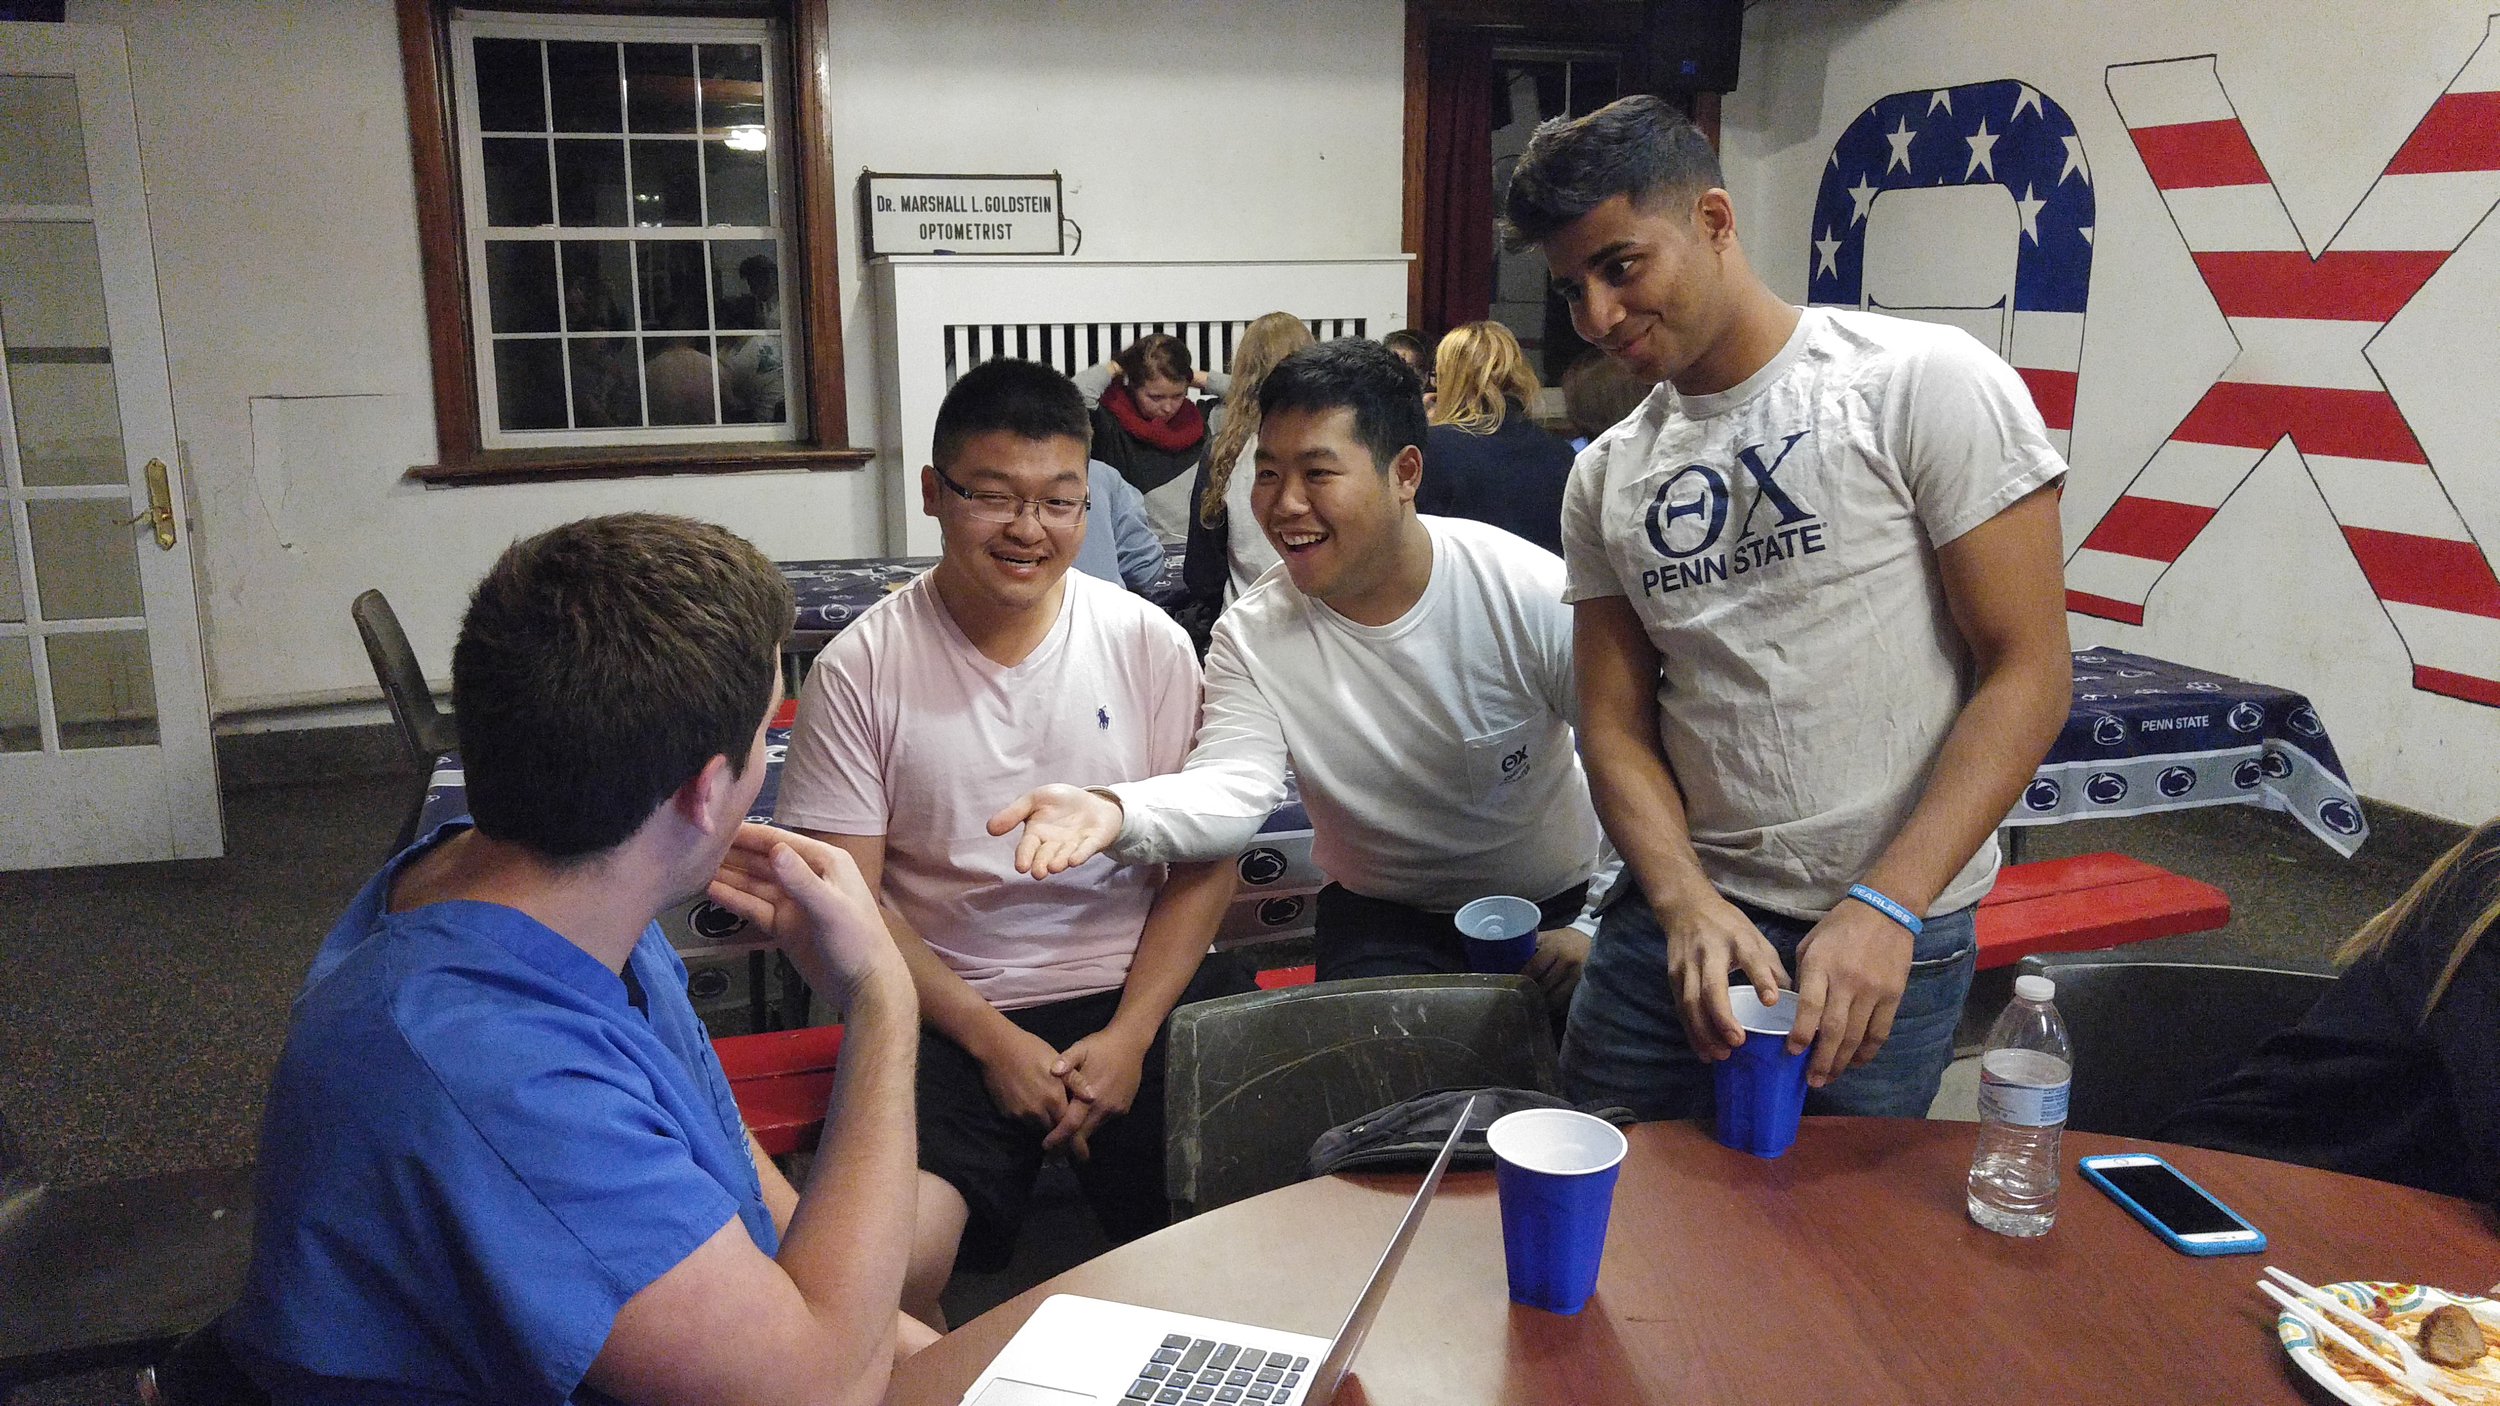 Brothers cooked and prepared pasta fdinner or guests for 4 hours in the basement in THON Fundraiser - L to R: Ryan Gattoni, Andrew Sie, Danny Lim, Milton Rahman